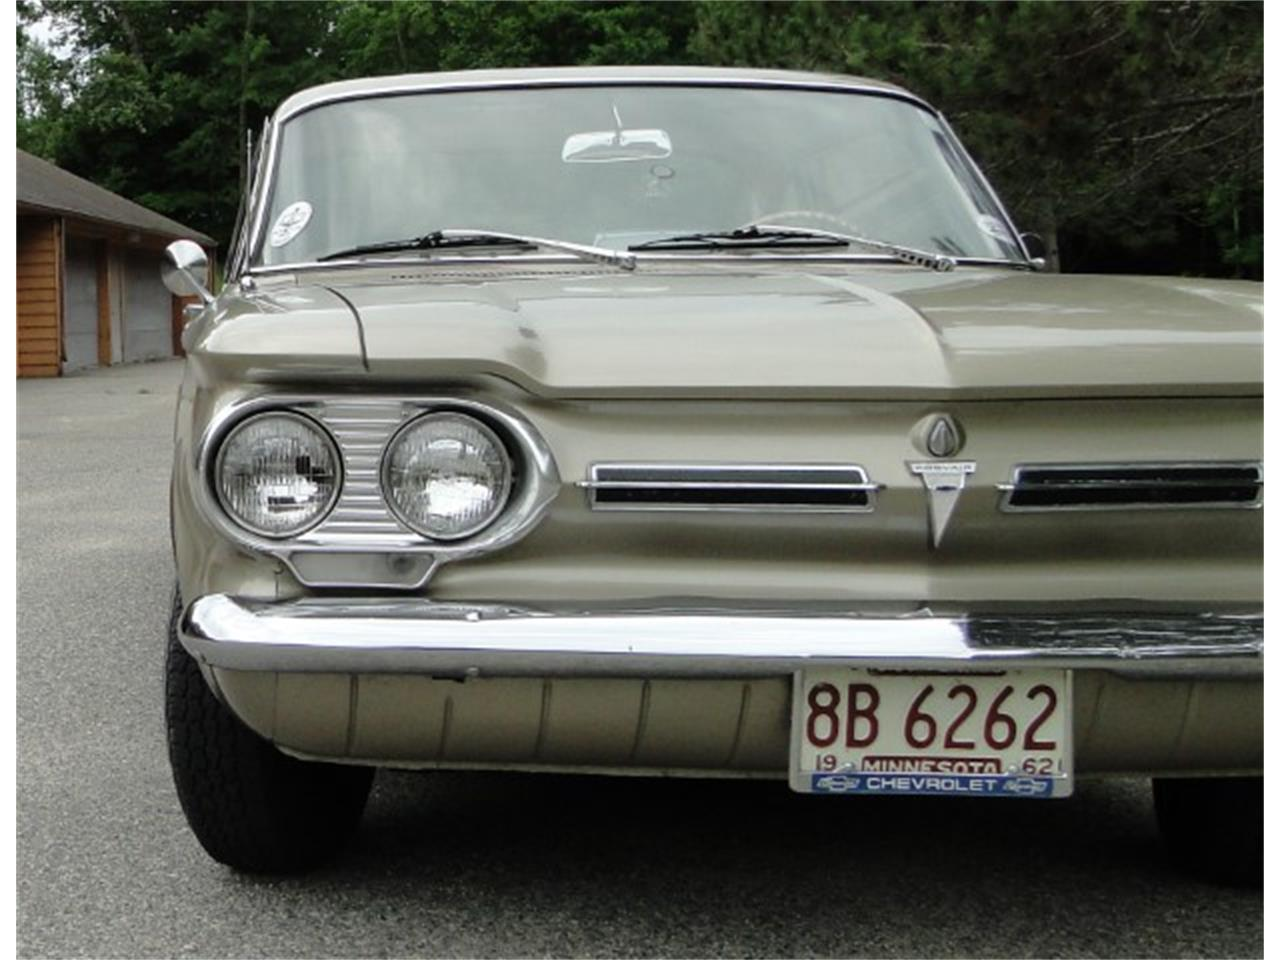 Large Picture of Classic '62 Chevrolet Corvair Monza - $11,000.00 - QIKQ